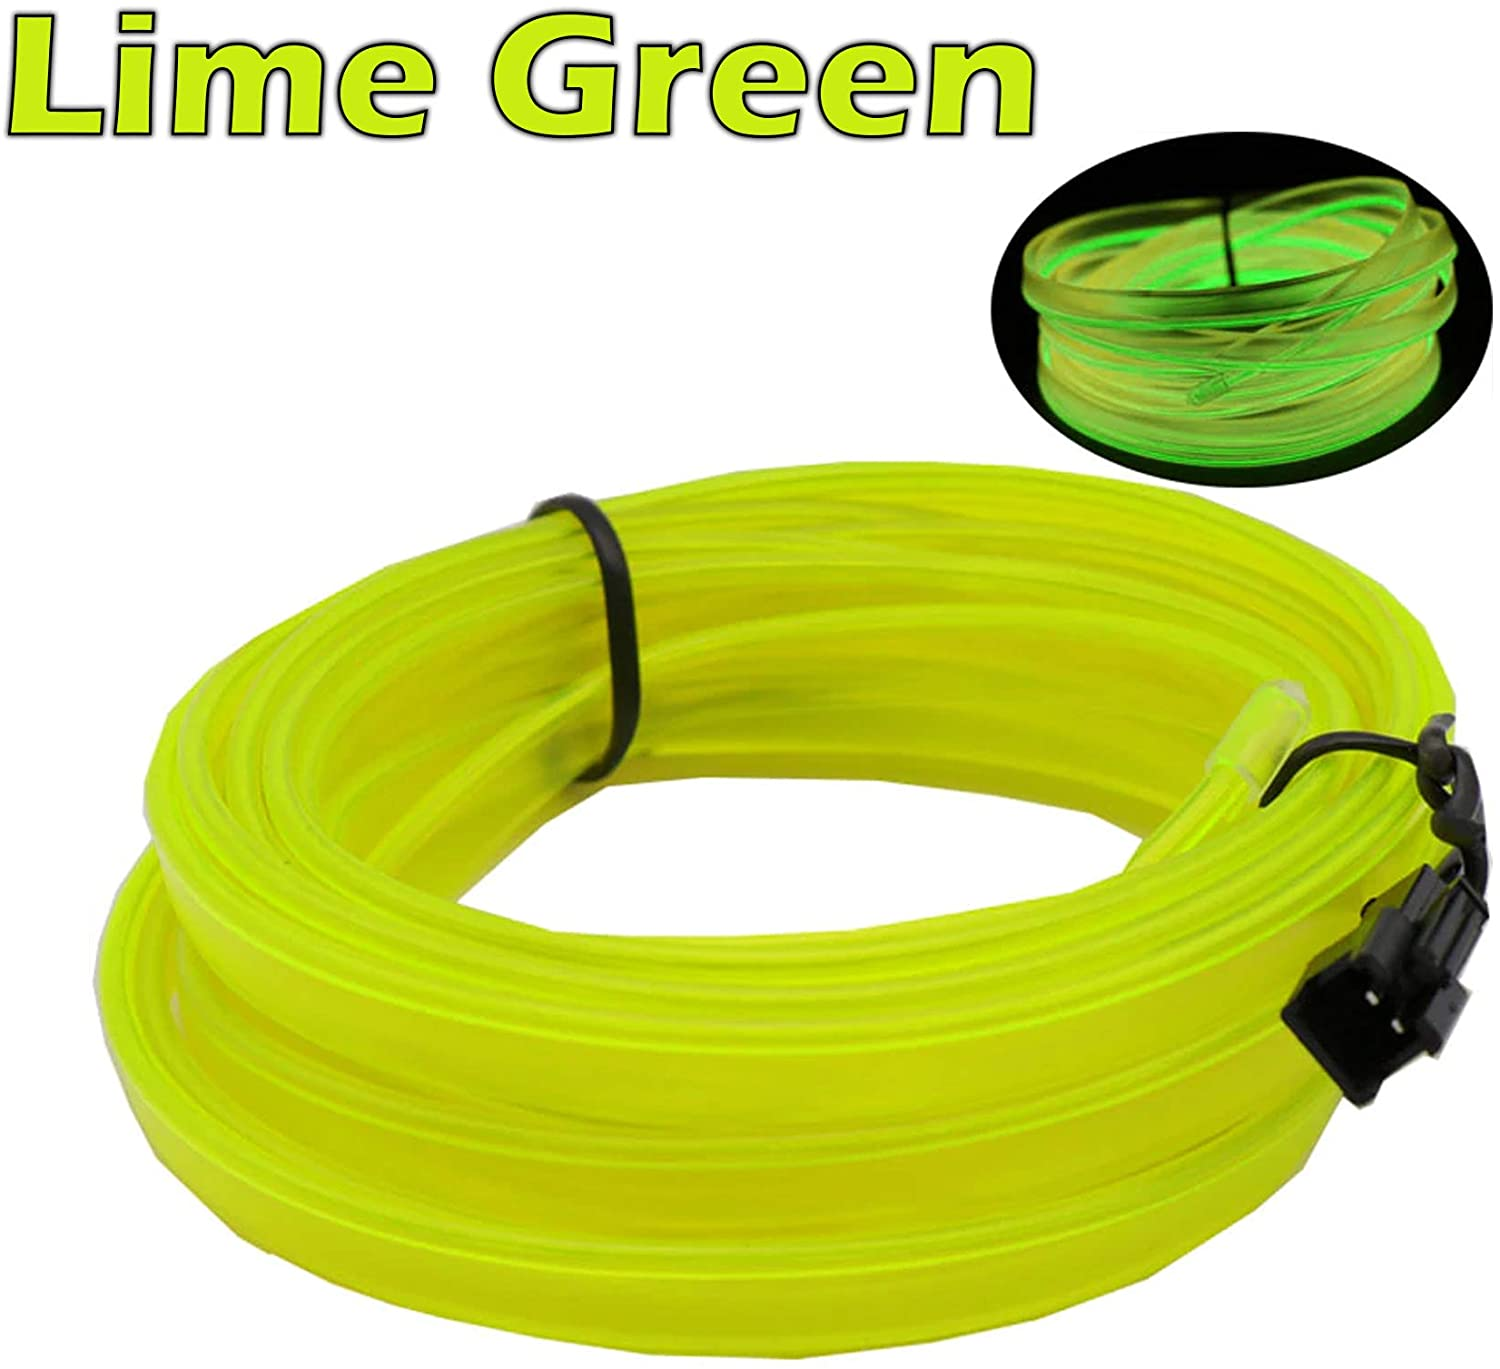 3-Pack 2m/6.5ft Lime Green Neon LED Light Glow EL Wire - 2.3 mm Thick - Powered by 12V USB Port - Craft Neon Wire String Light for DIY Project Costume Accessories Cosplay